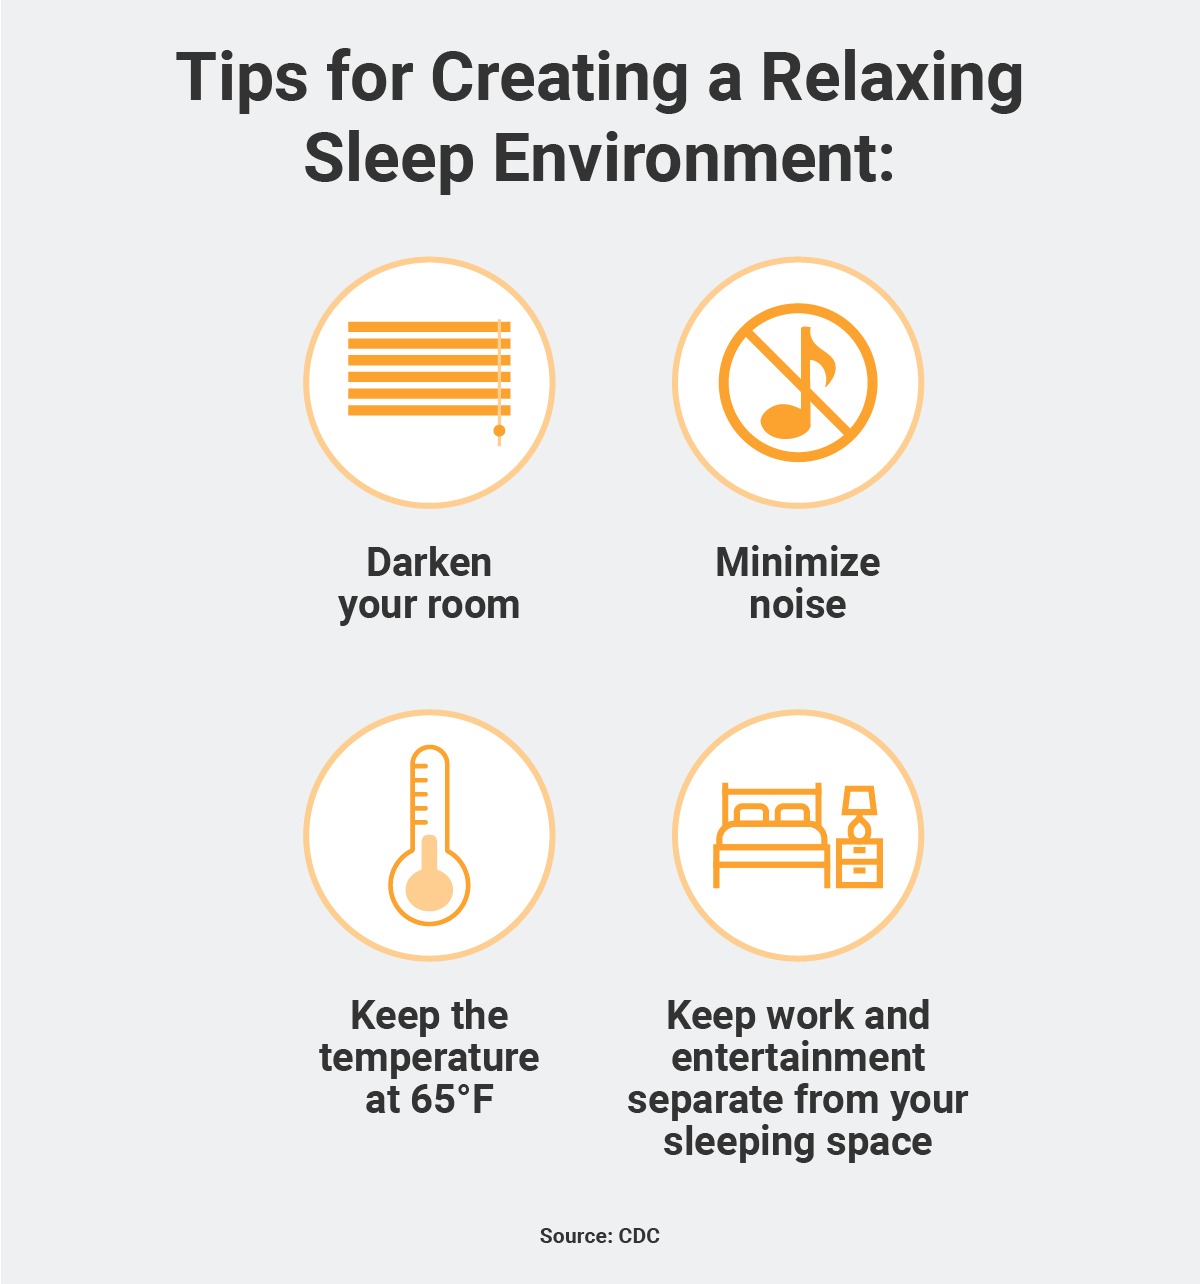 Tips for creating a relaxing sleep environment infographic